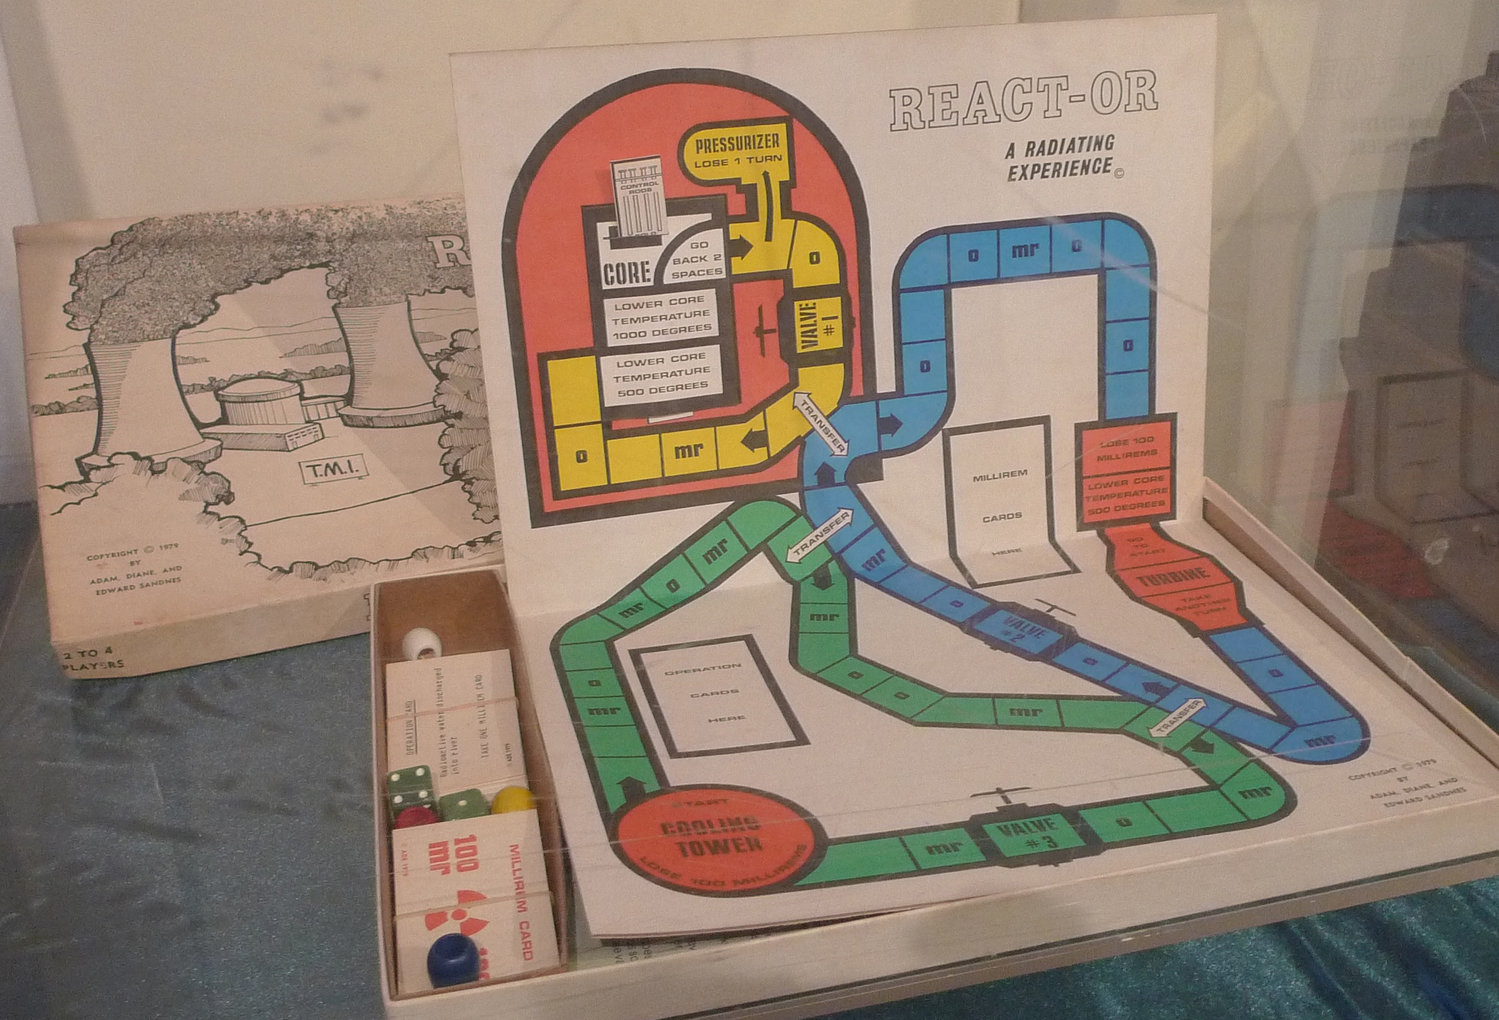 This board game is part of the exhibit now on display at the Middletown Area Historical Society at 29 E. Main St. commemorating the 40th anniversary of the accident at Three Mile Island.